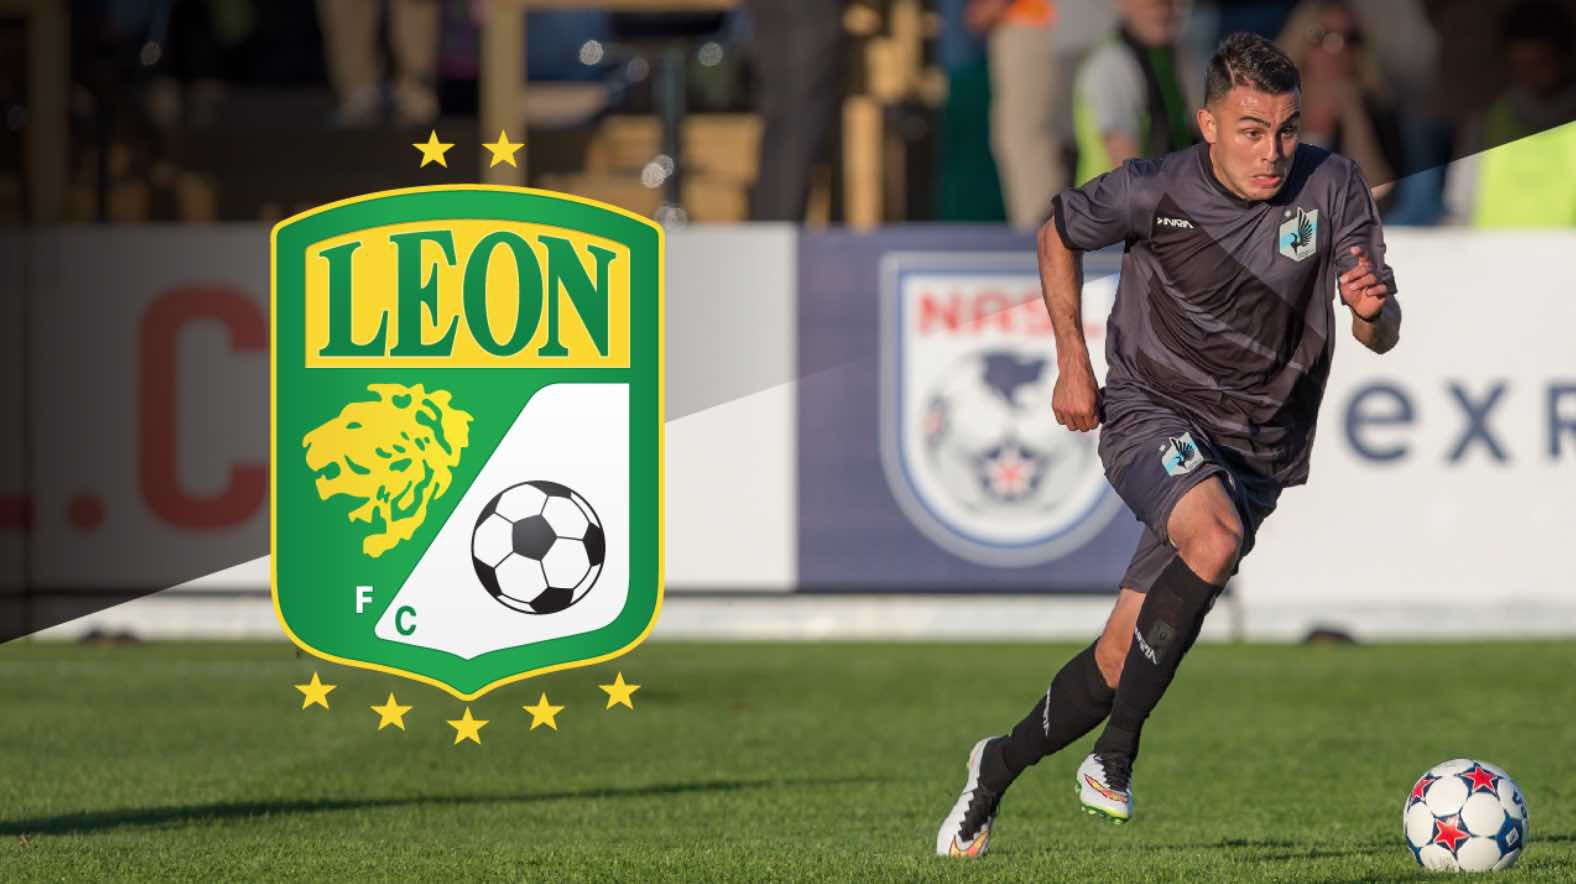 Miguel Ibarra scores in second consecutive match